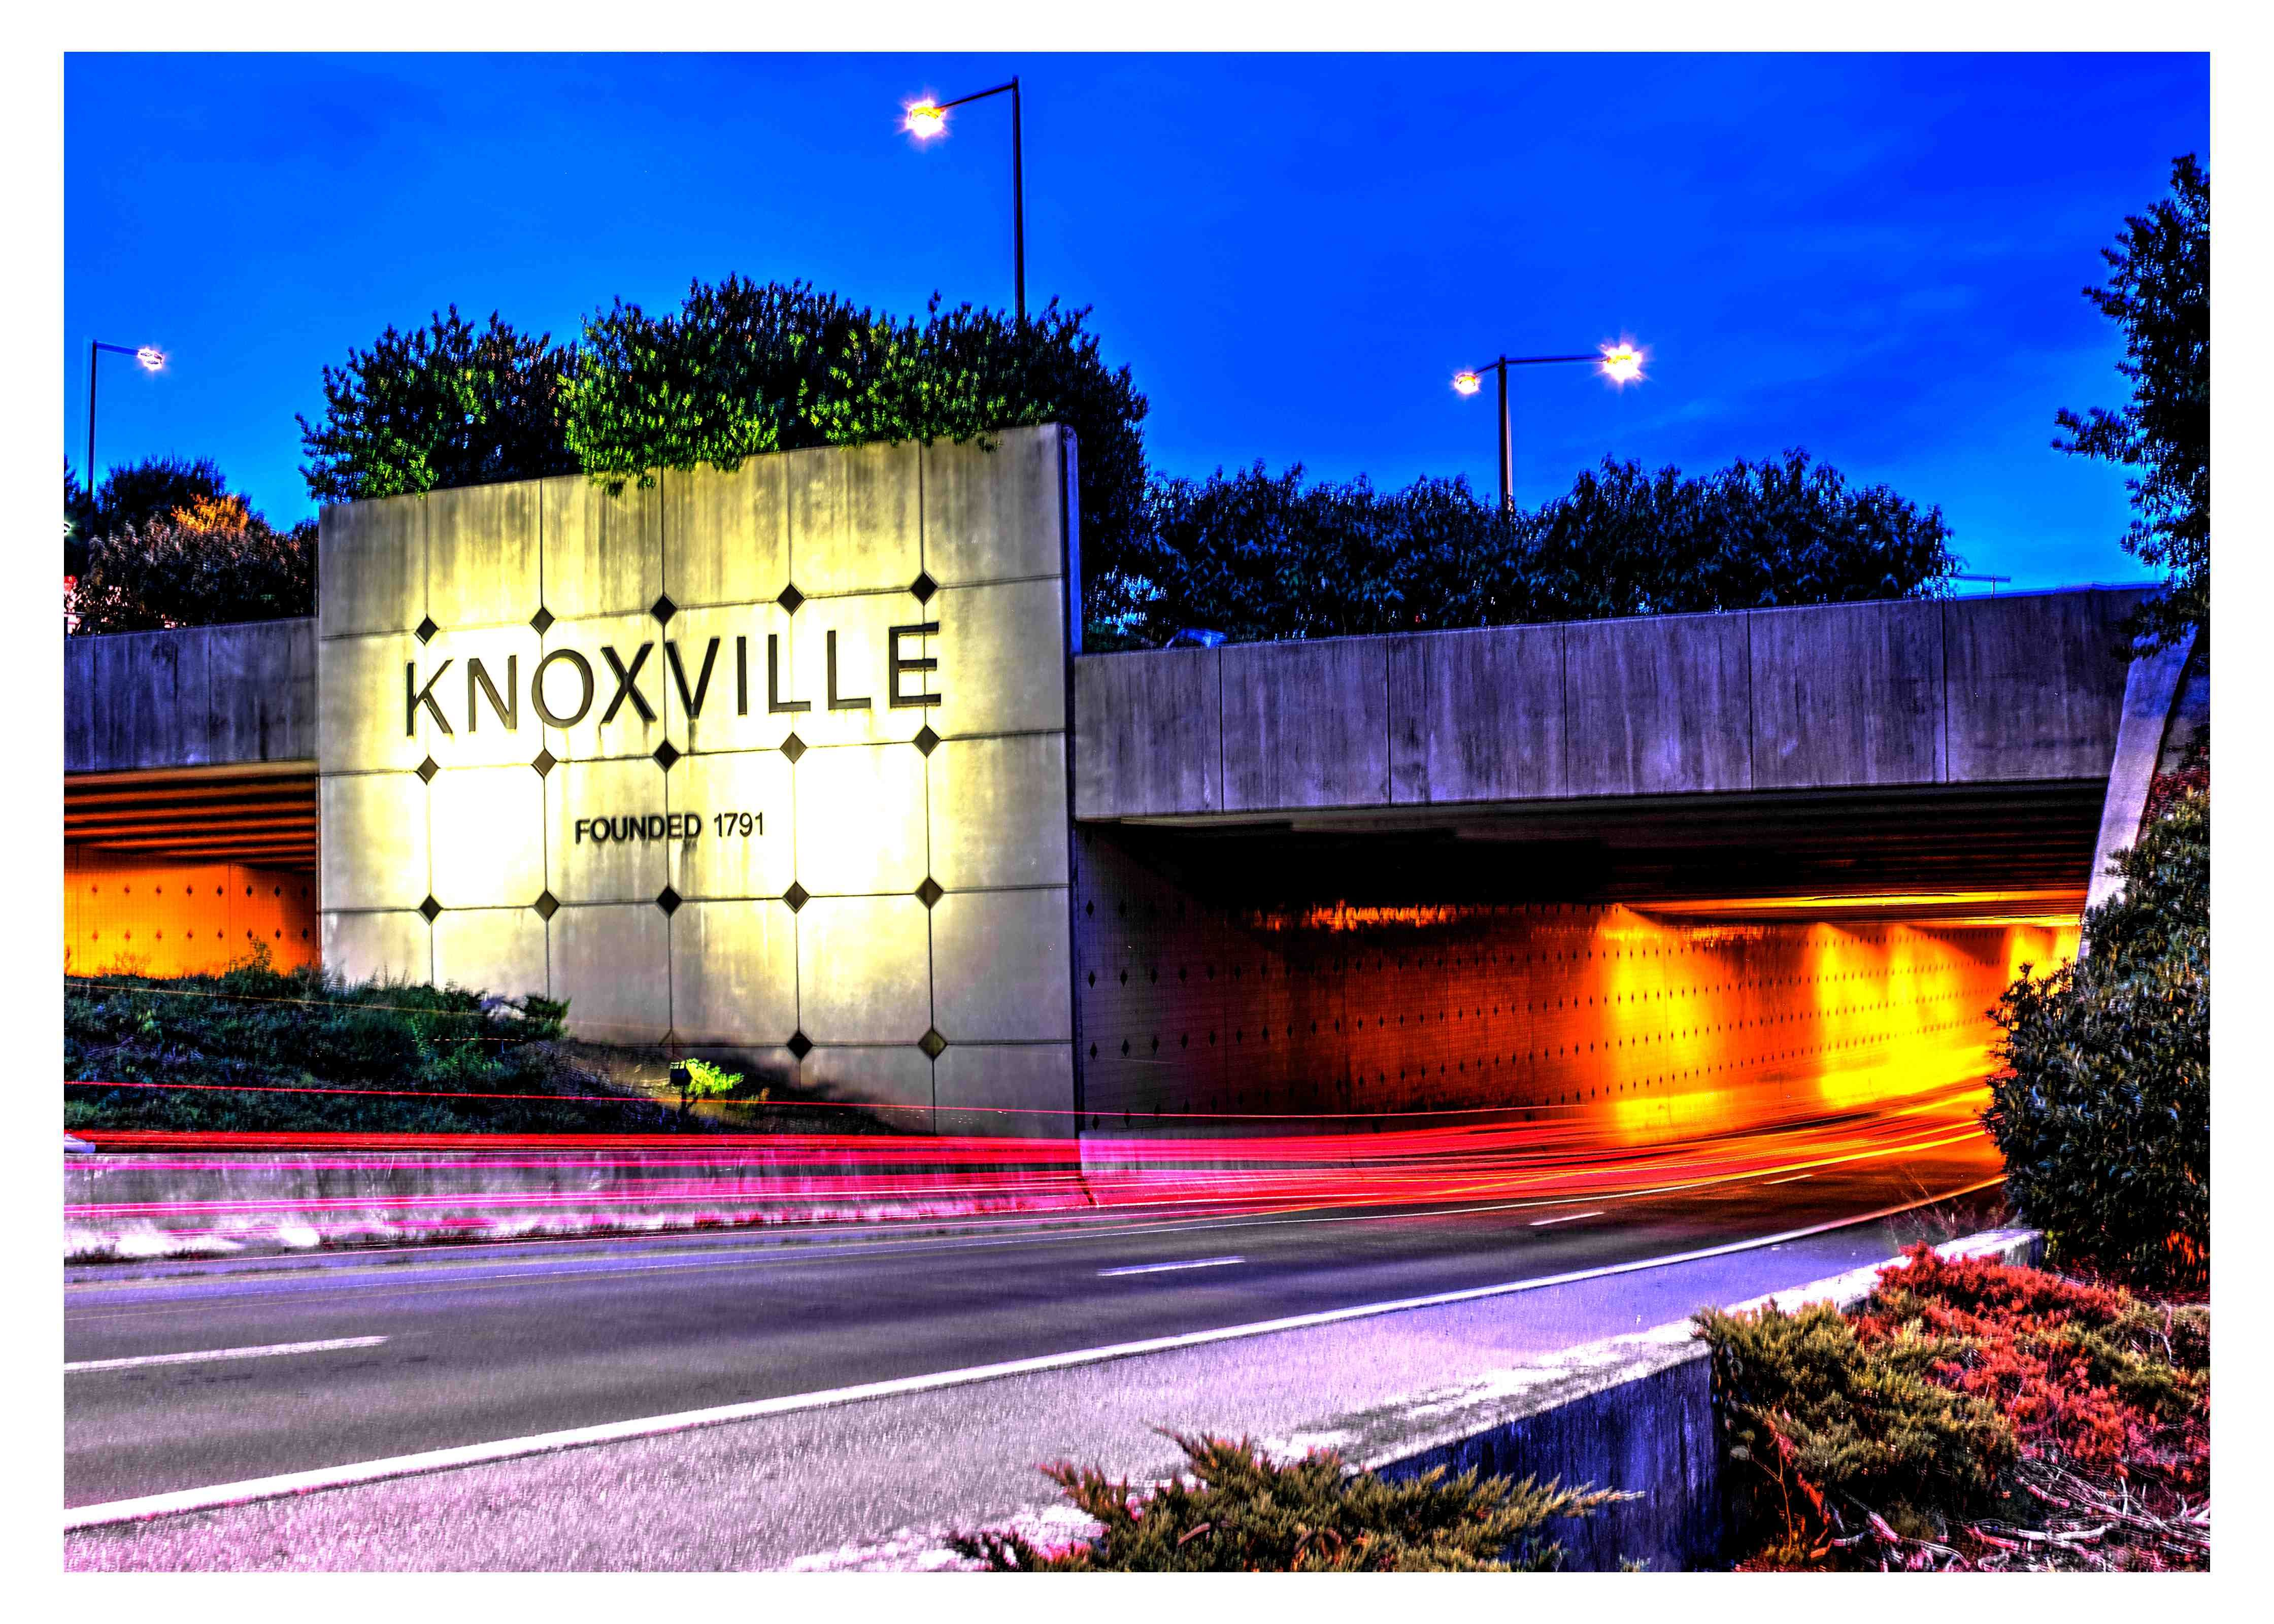 Wel e to Knoxville This is the entrance sign from the interstate